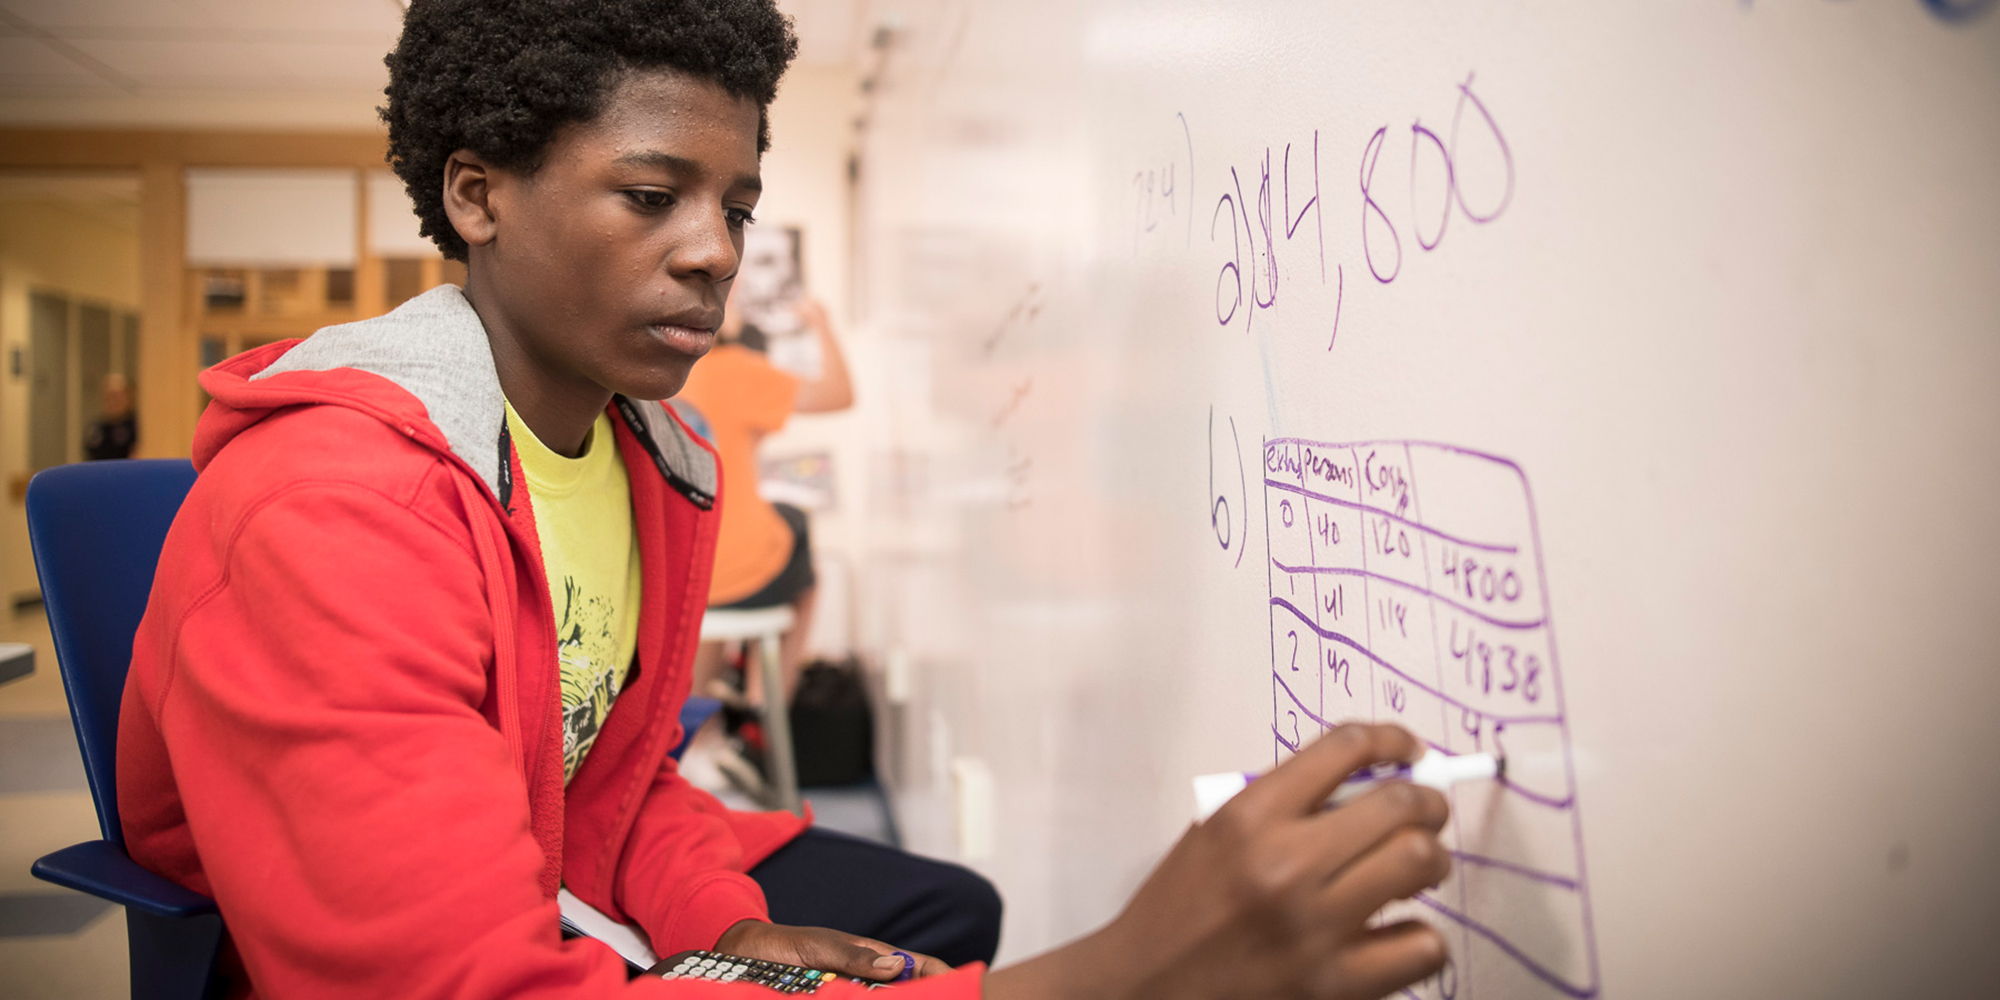 A boy works out a math problem at the whiteboard.